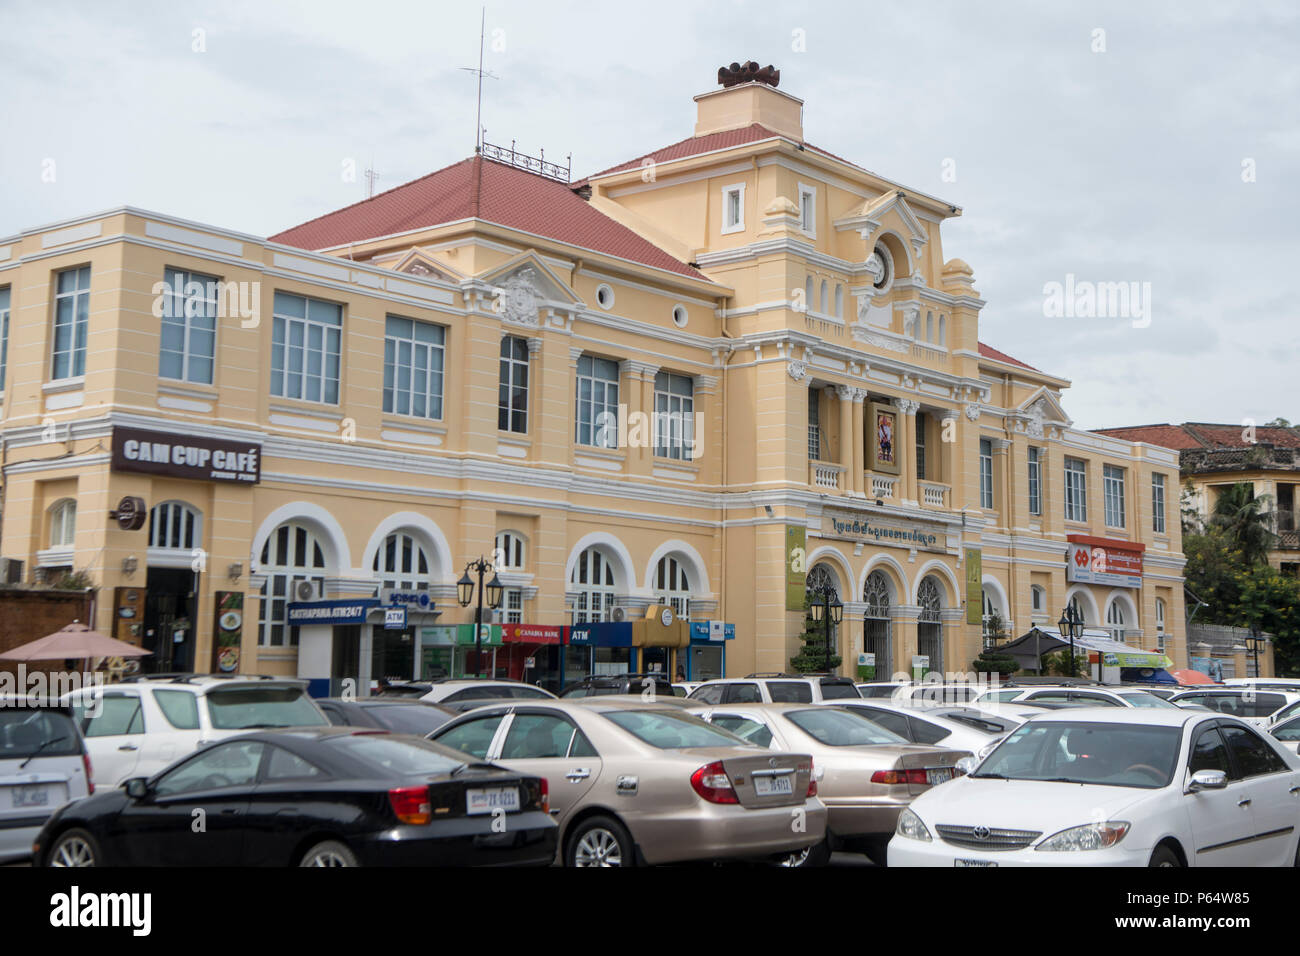 Cambodia phnom penh french colonial stock photos cambodia phnom penh french colonial stock - Foreign and colonial office ...